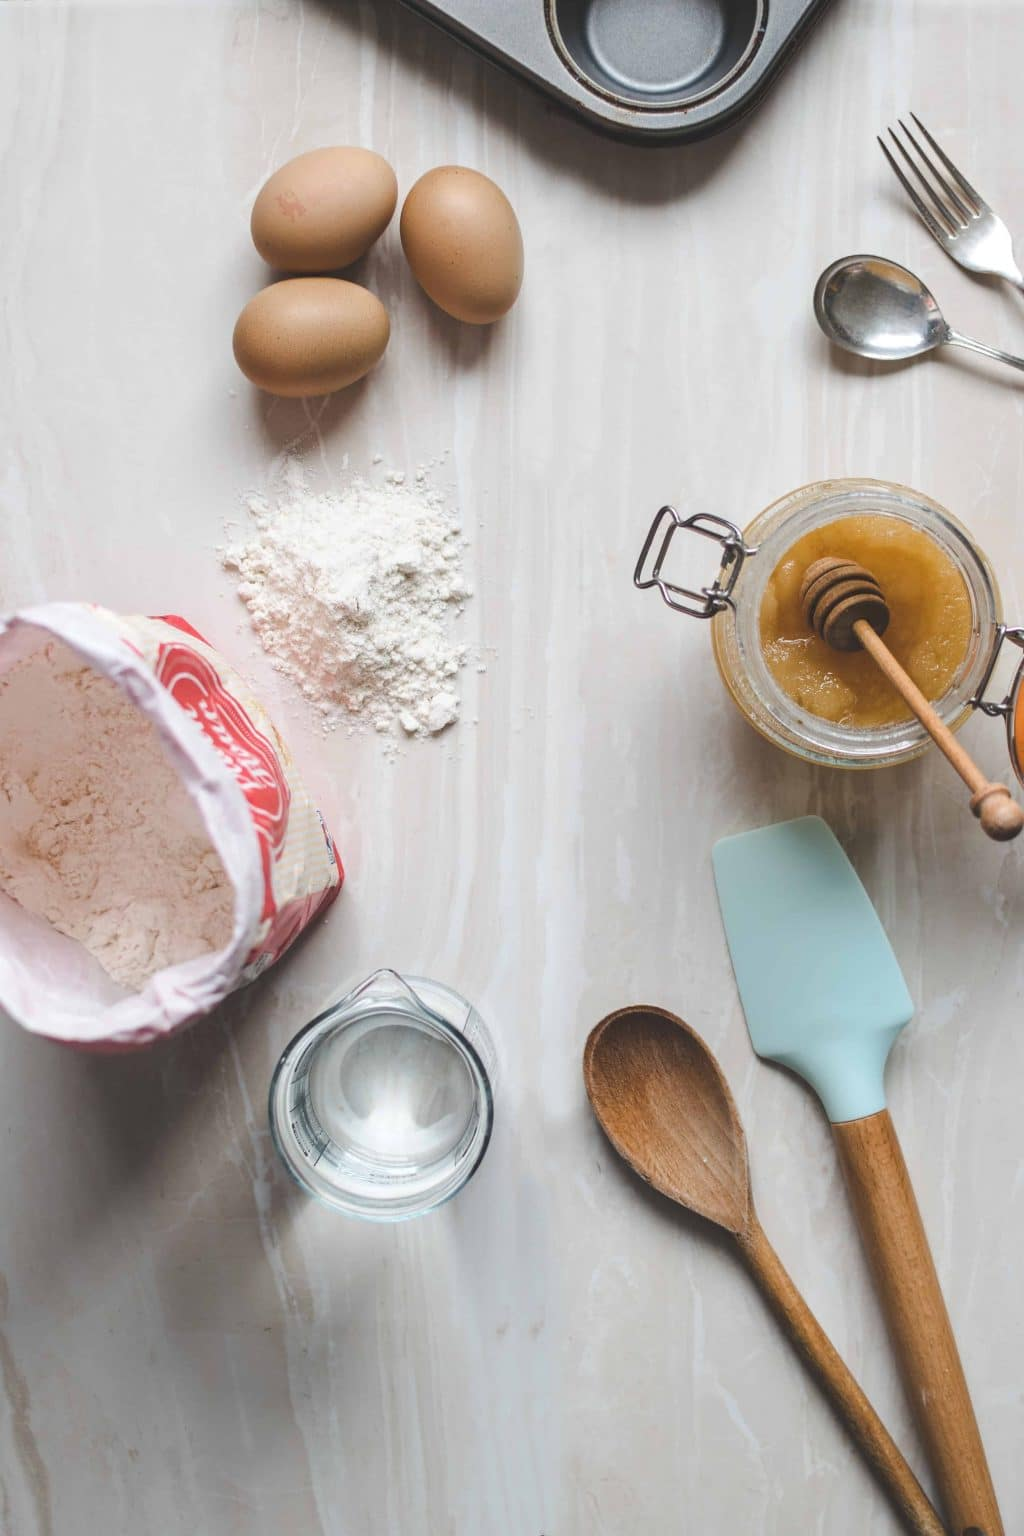 This page is dedicated to ingredient function, limited to baked goods such as cakes, cookies, pancakes, muffins, etc. I hope you find it useful. Links to ingredient function of fat, sugar, flour, salt, eggs. If you'd like to learn more about any of the main ingredients in baking, just give a shout! | pastrychefonline.com